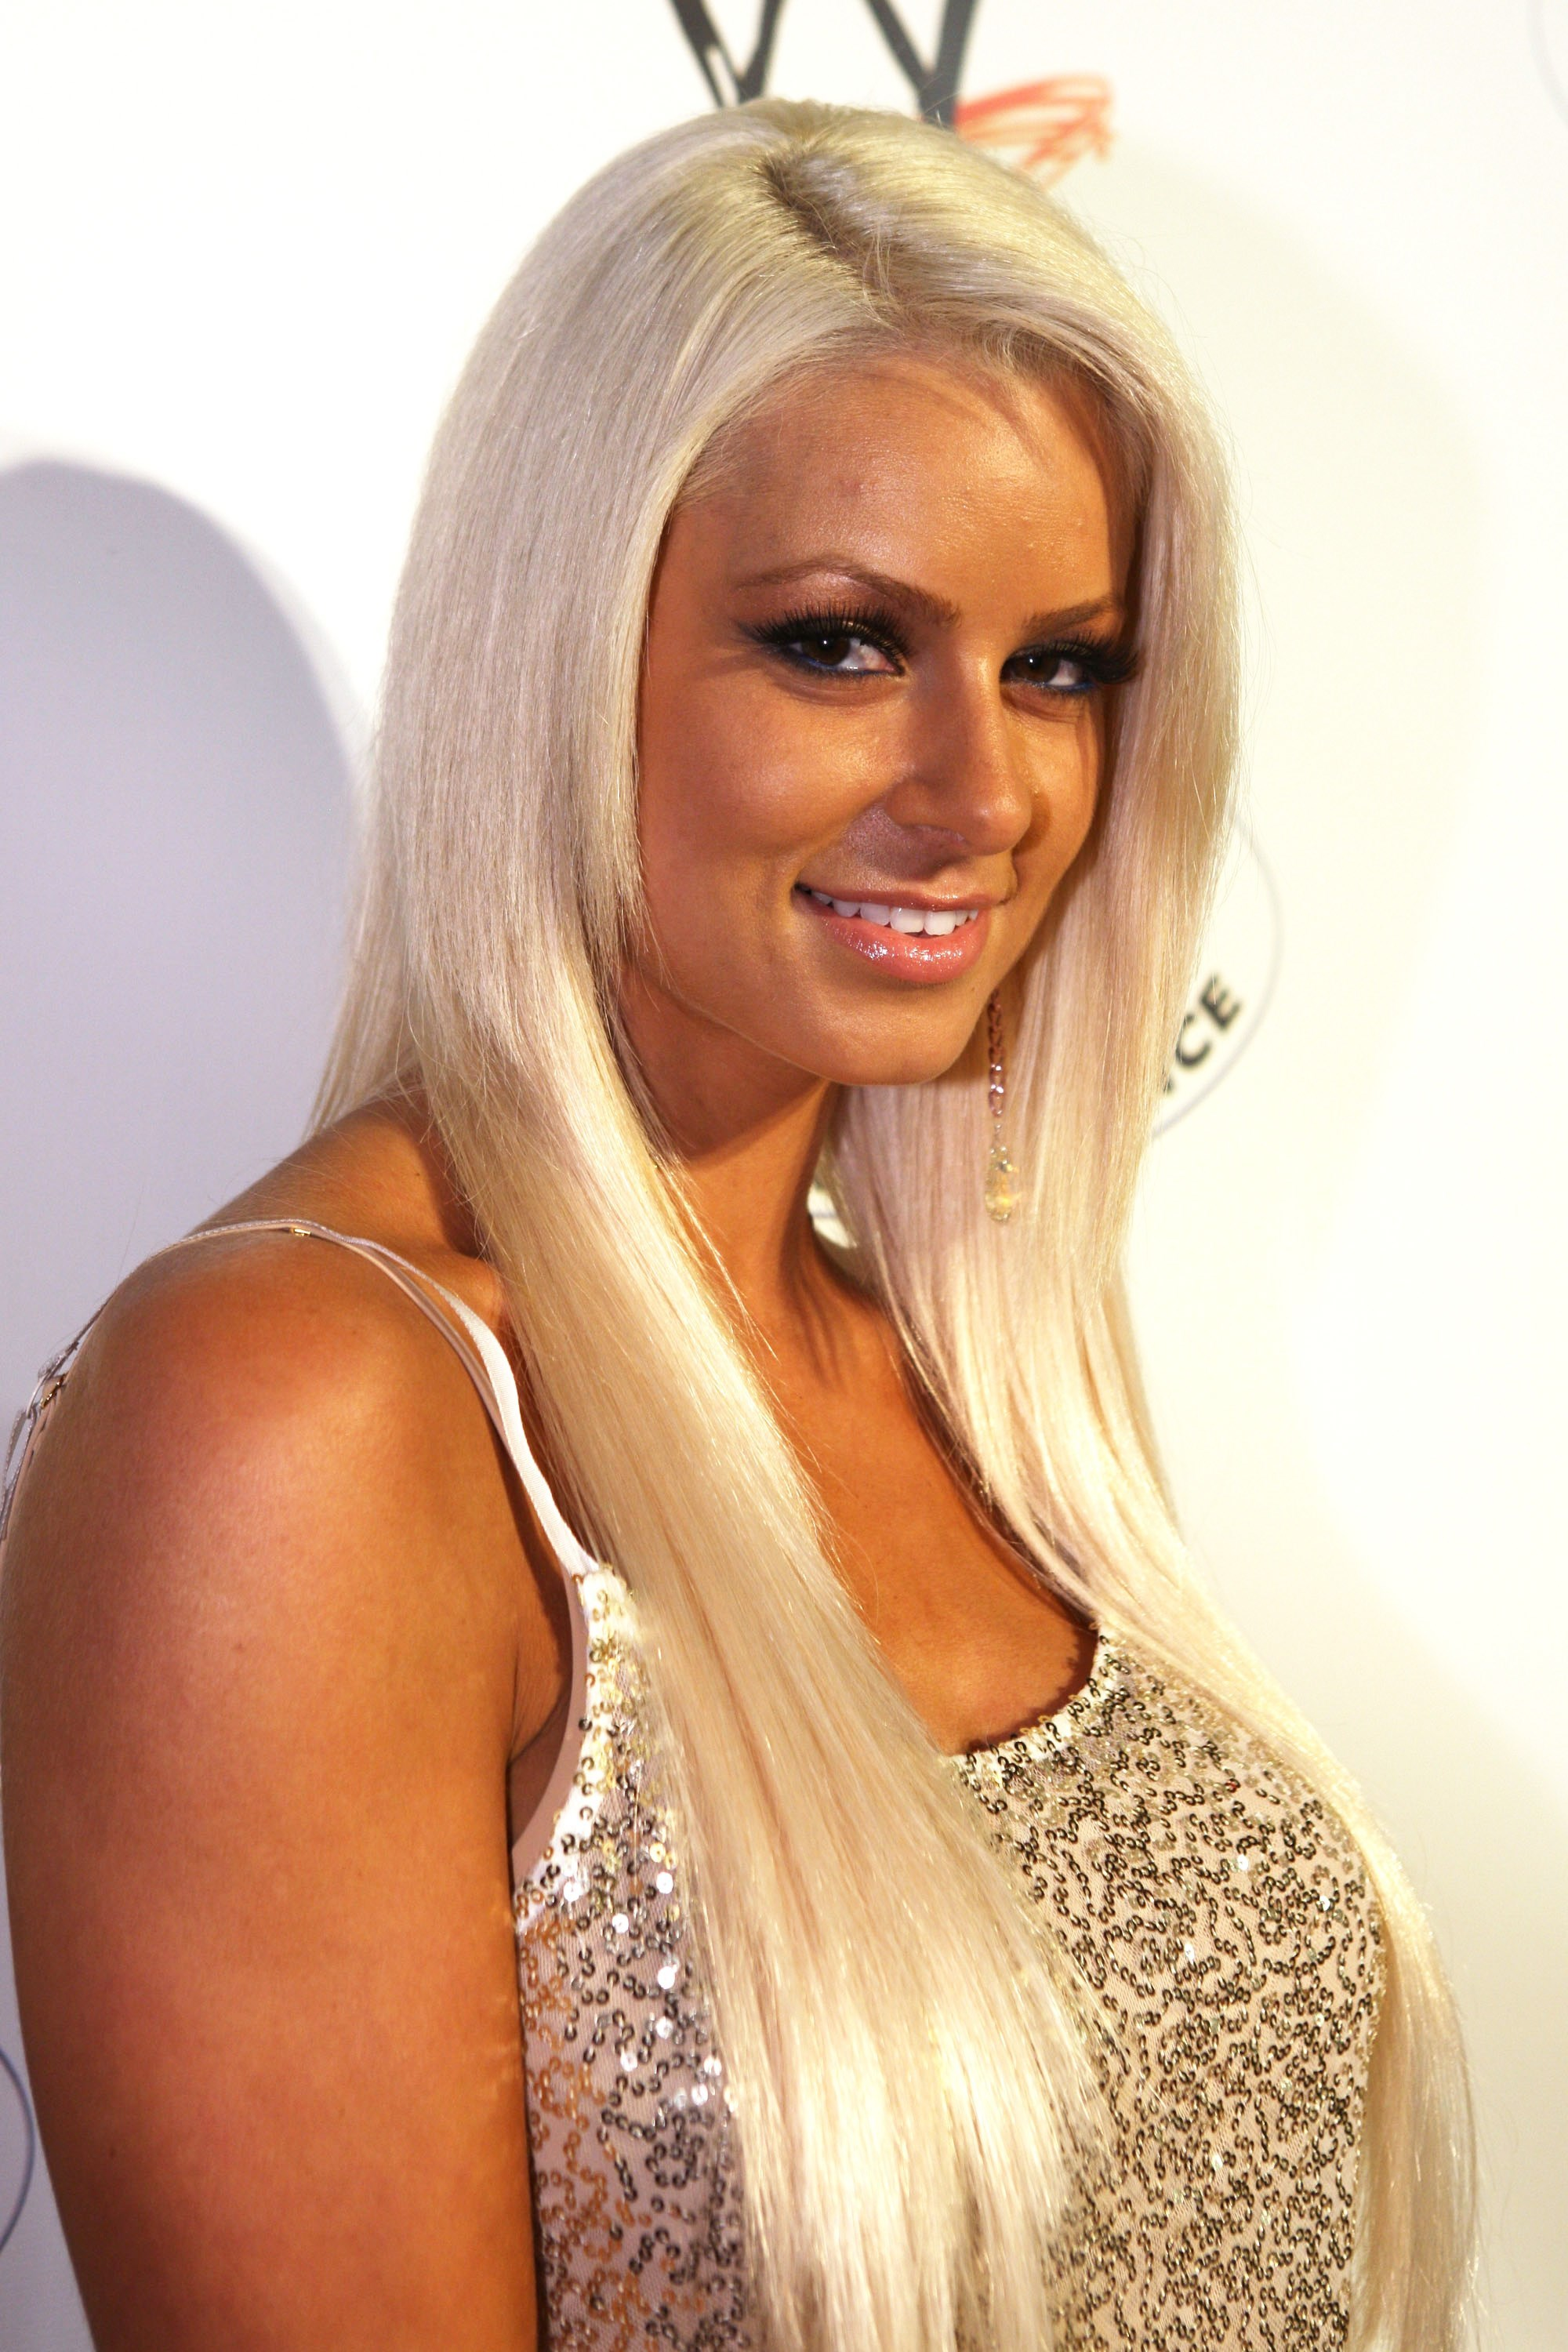 Maryse Ouellet Canada nudes (28 photo), Pussy, Fappening, Feet, cameltoe 2019